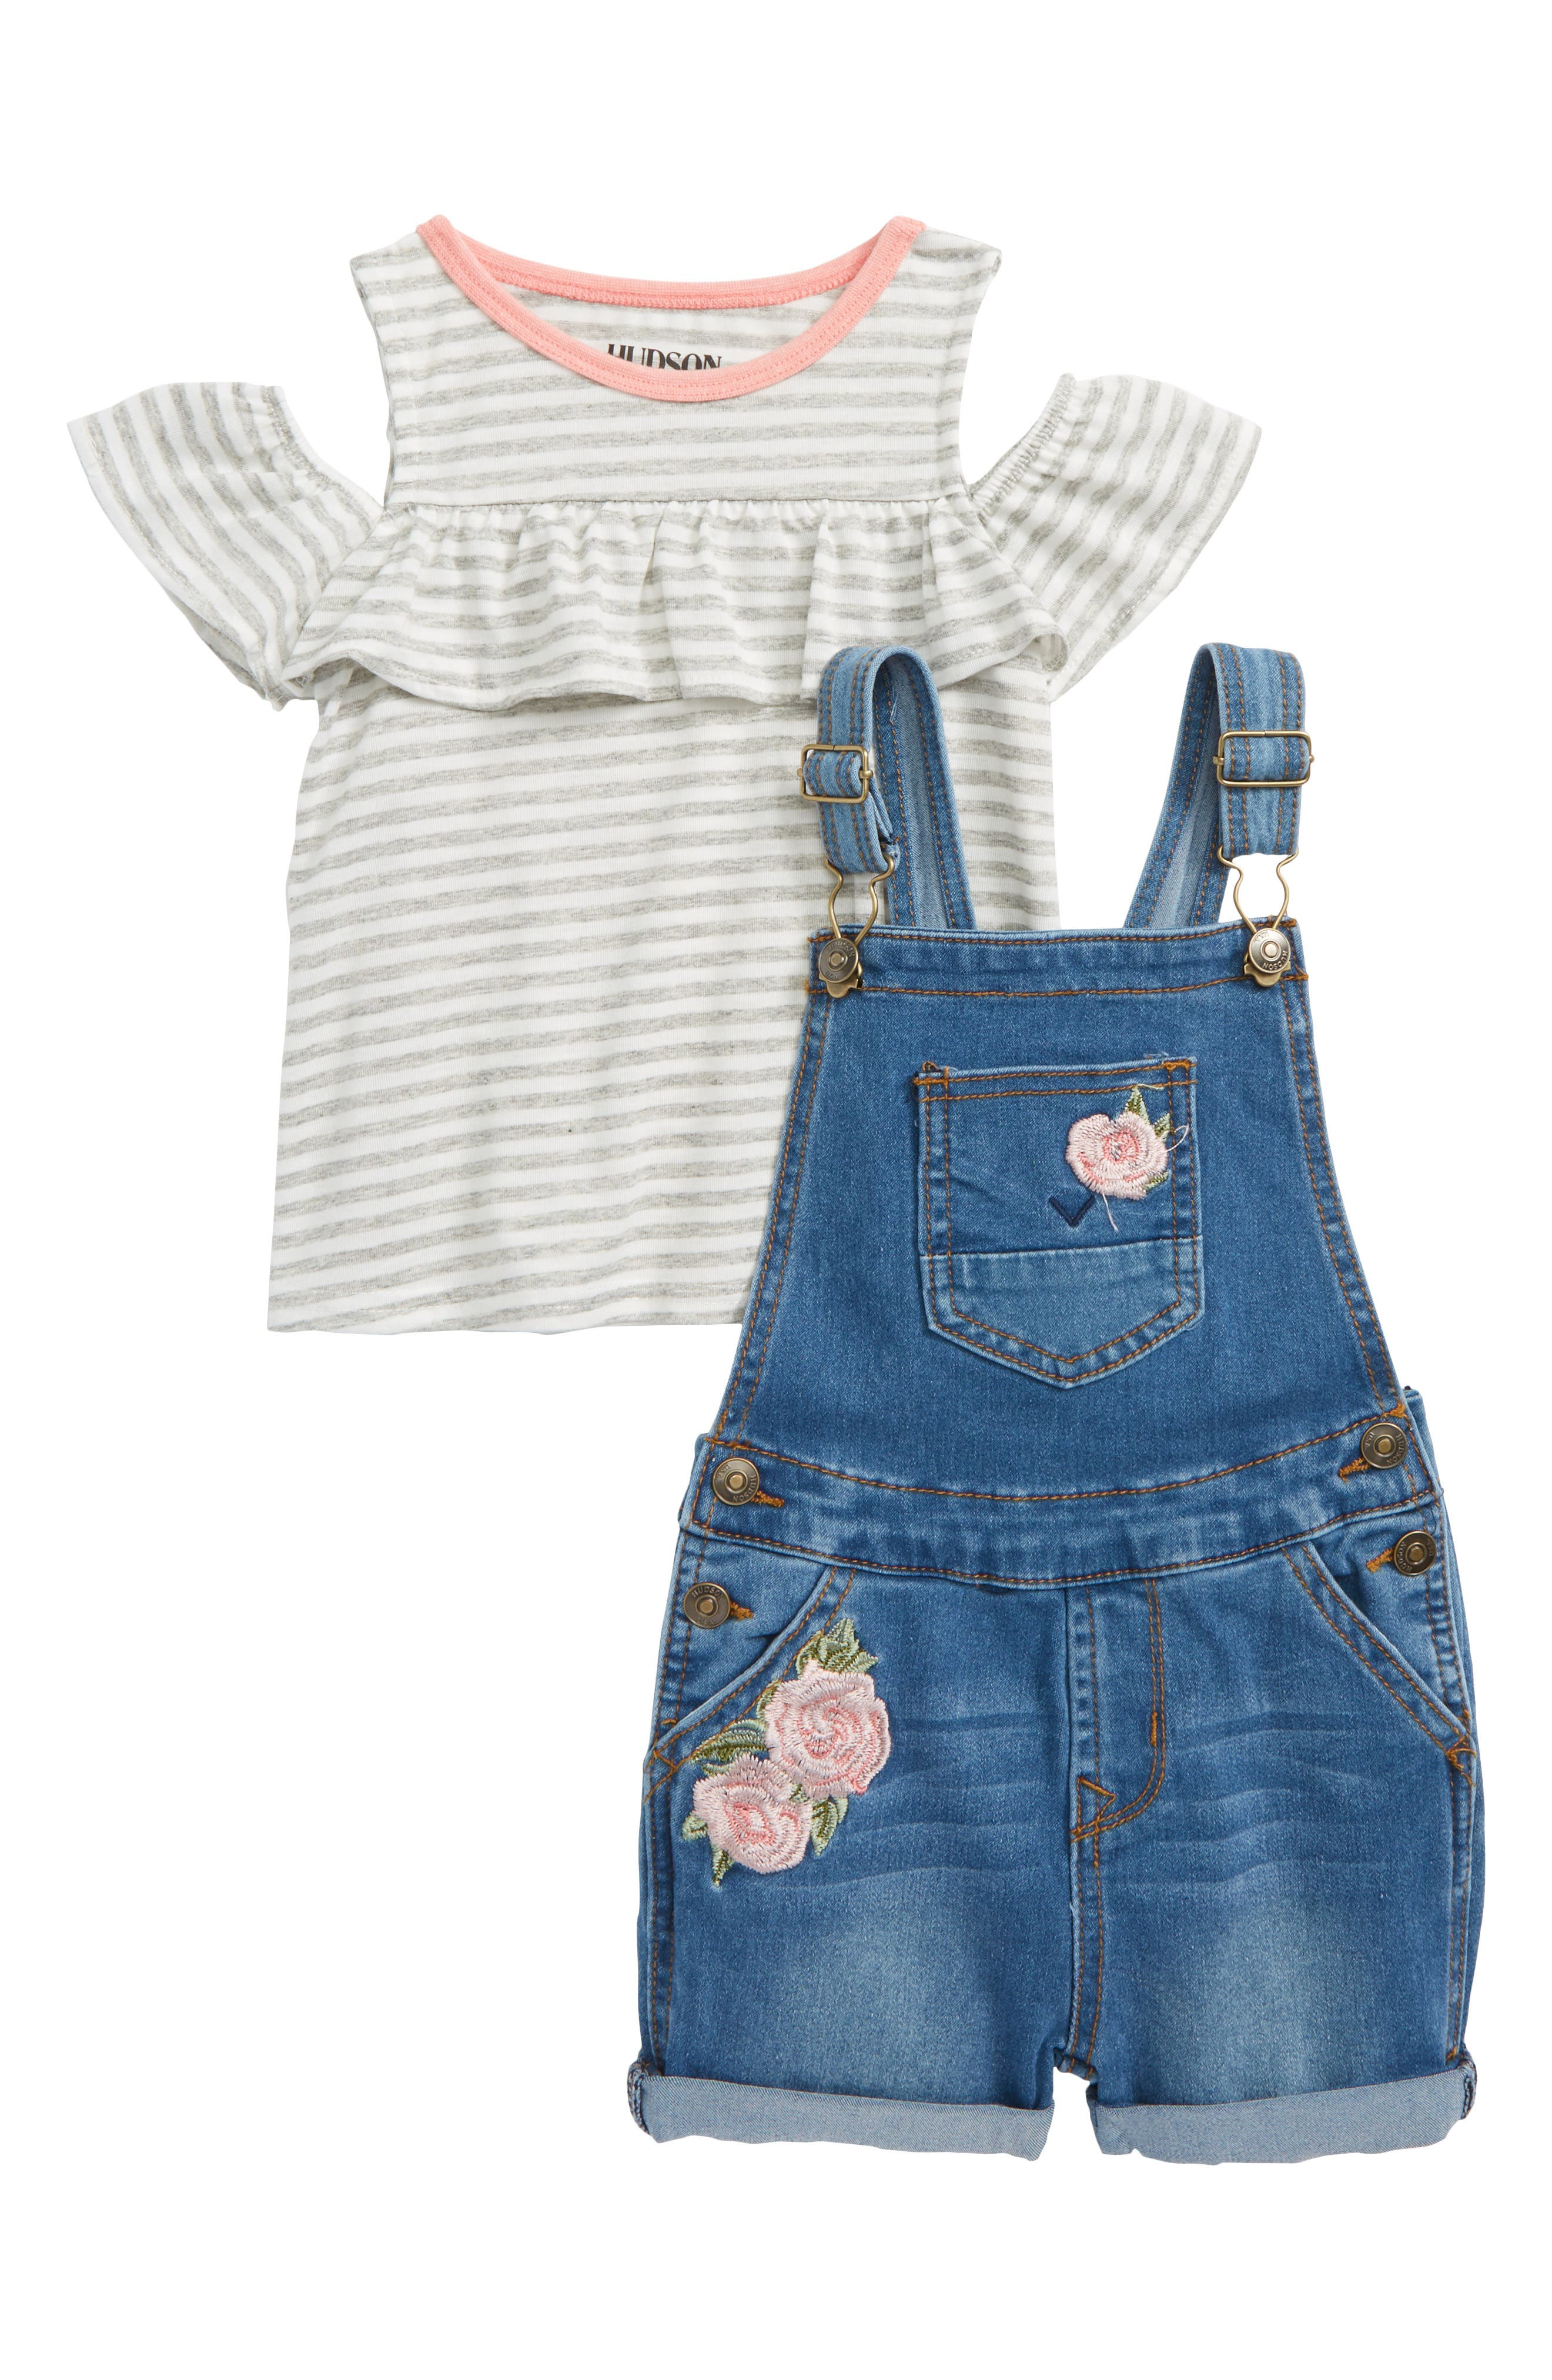 Overalls & Tee Set,                             Main thumbnail 1, color,                             499